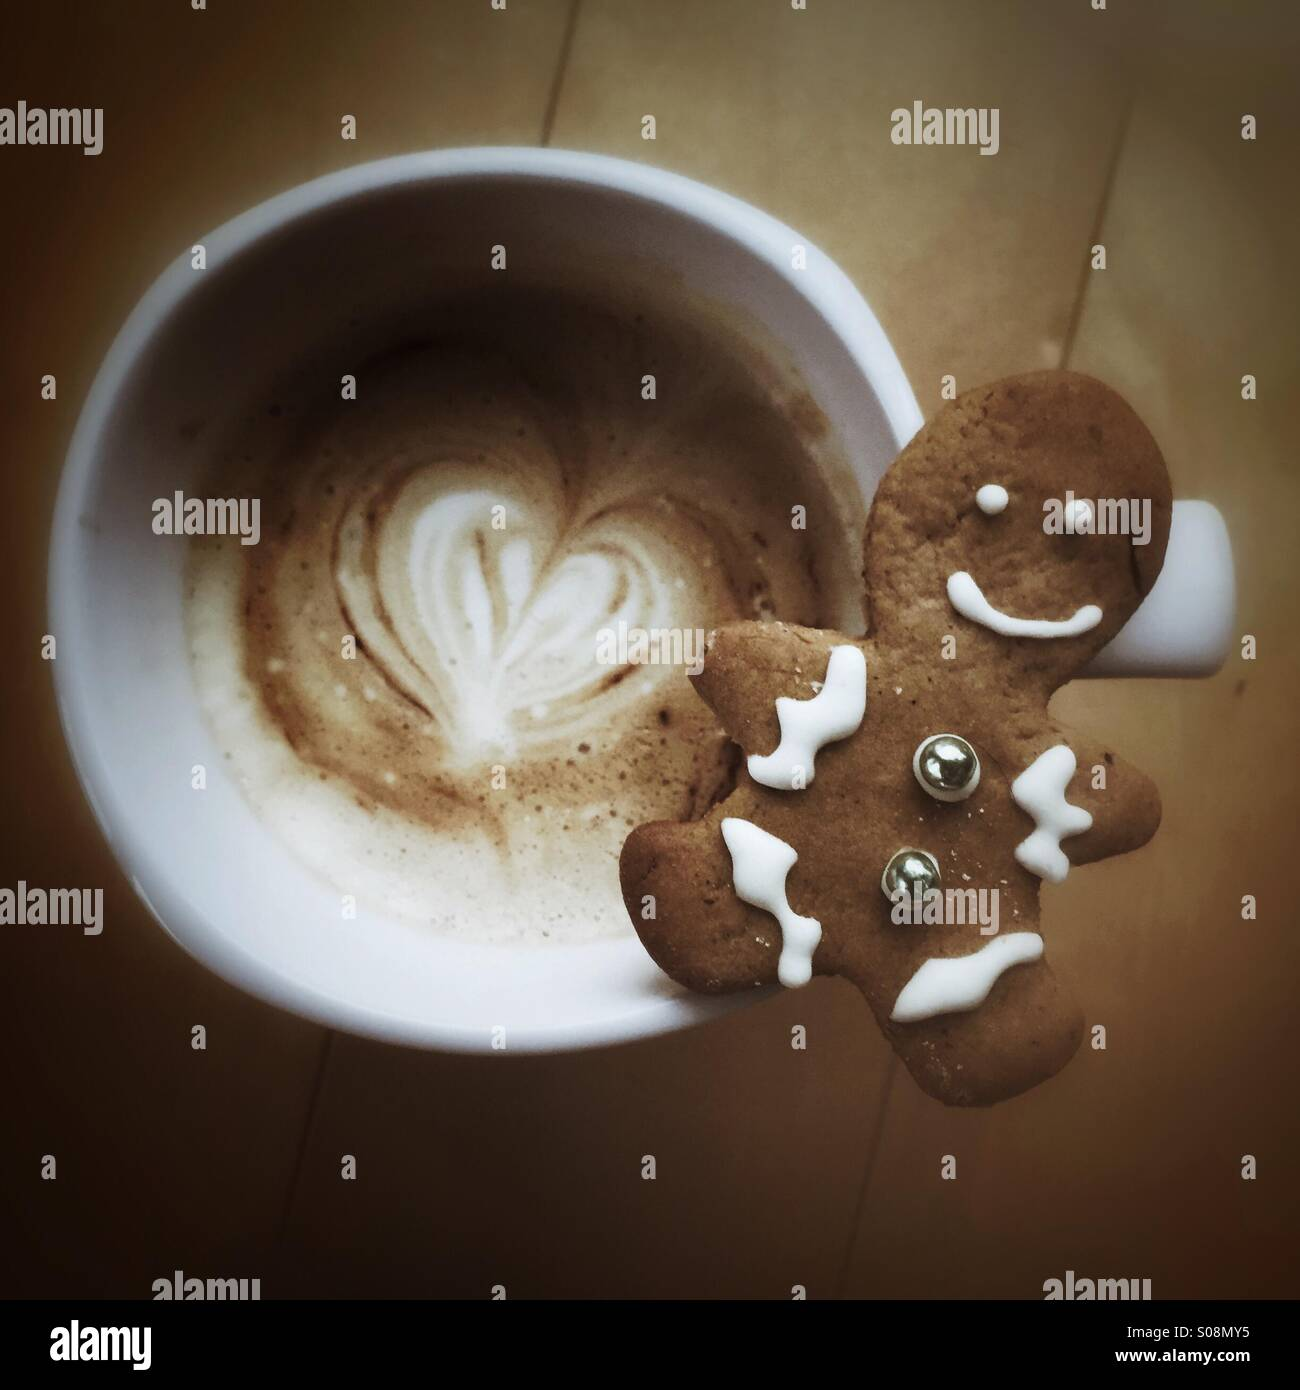 Holiday season - gingerbread cookie & latte - Stock Image